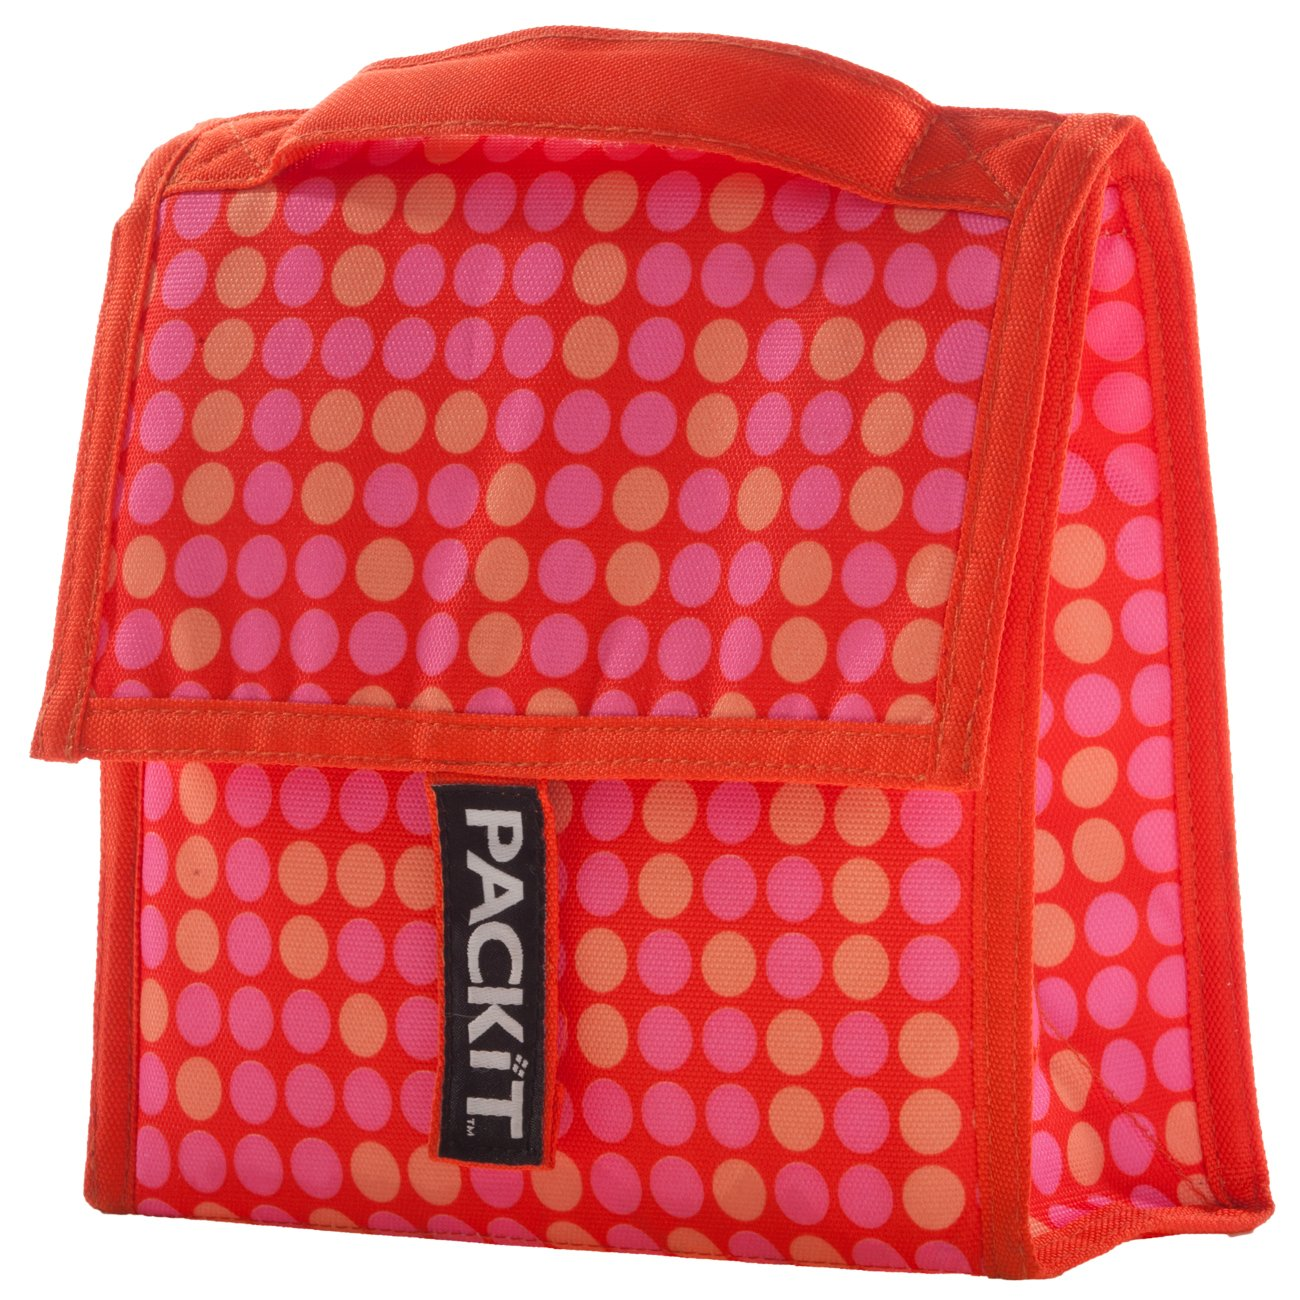 Packit Mini - Bolso nevera, diseño a lunares, color naranja ...